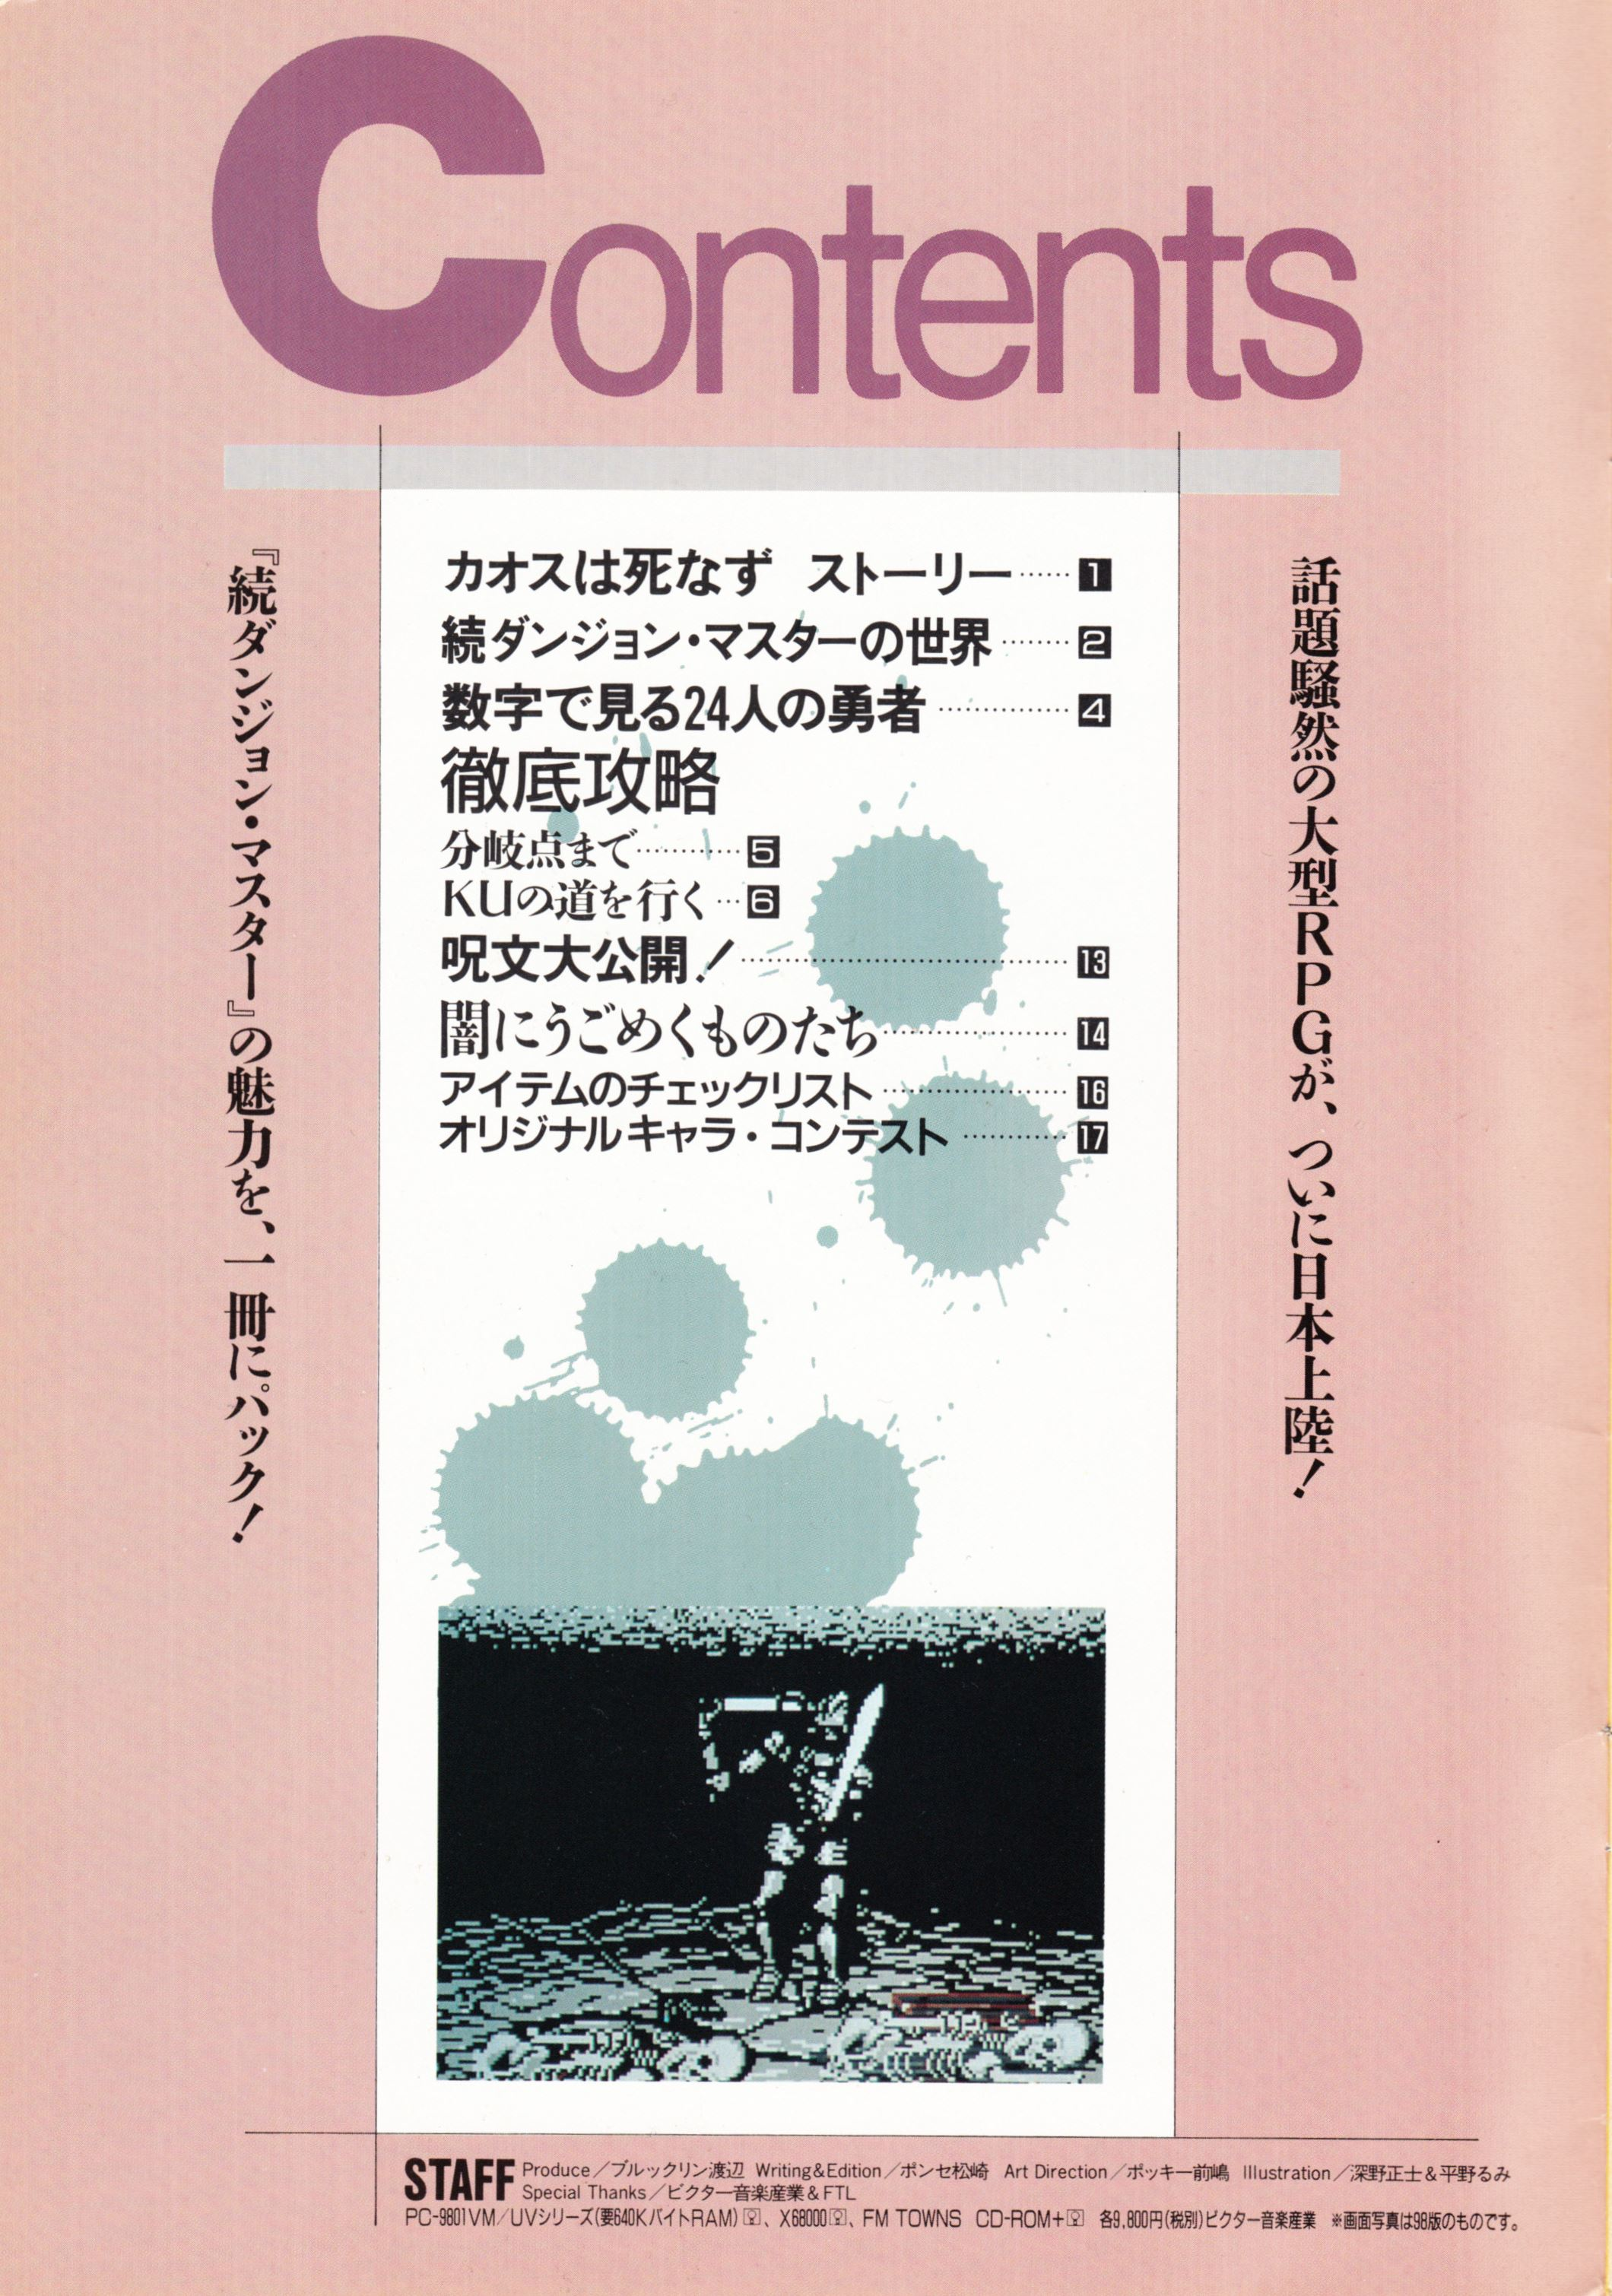 Supplement 1 - Chaos Strikes Back Companion Guide Guide published in Japanese magazine 'Popcom', Vol 9 No 2 01 February 1991, Page 2